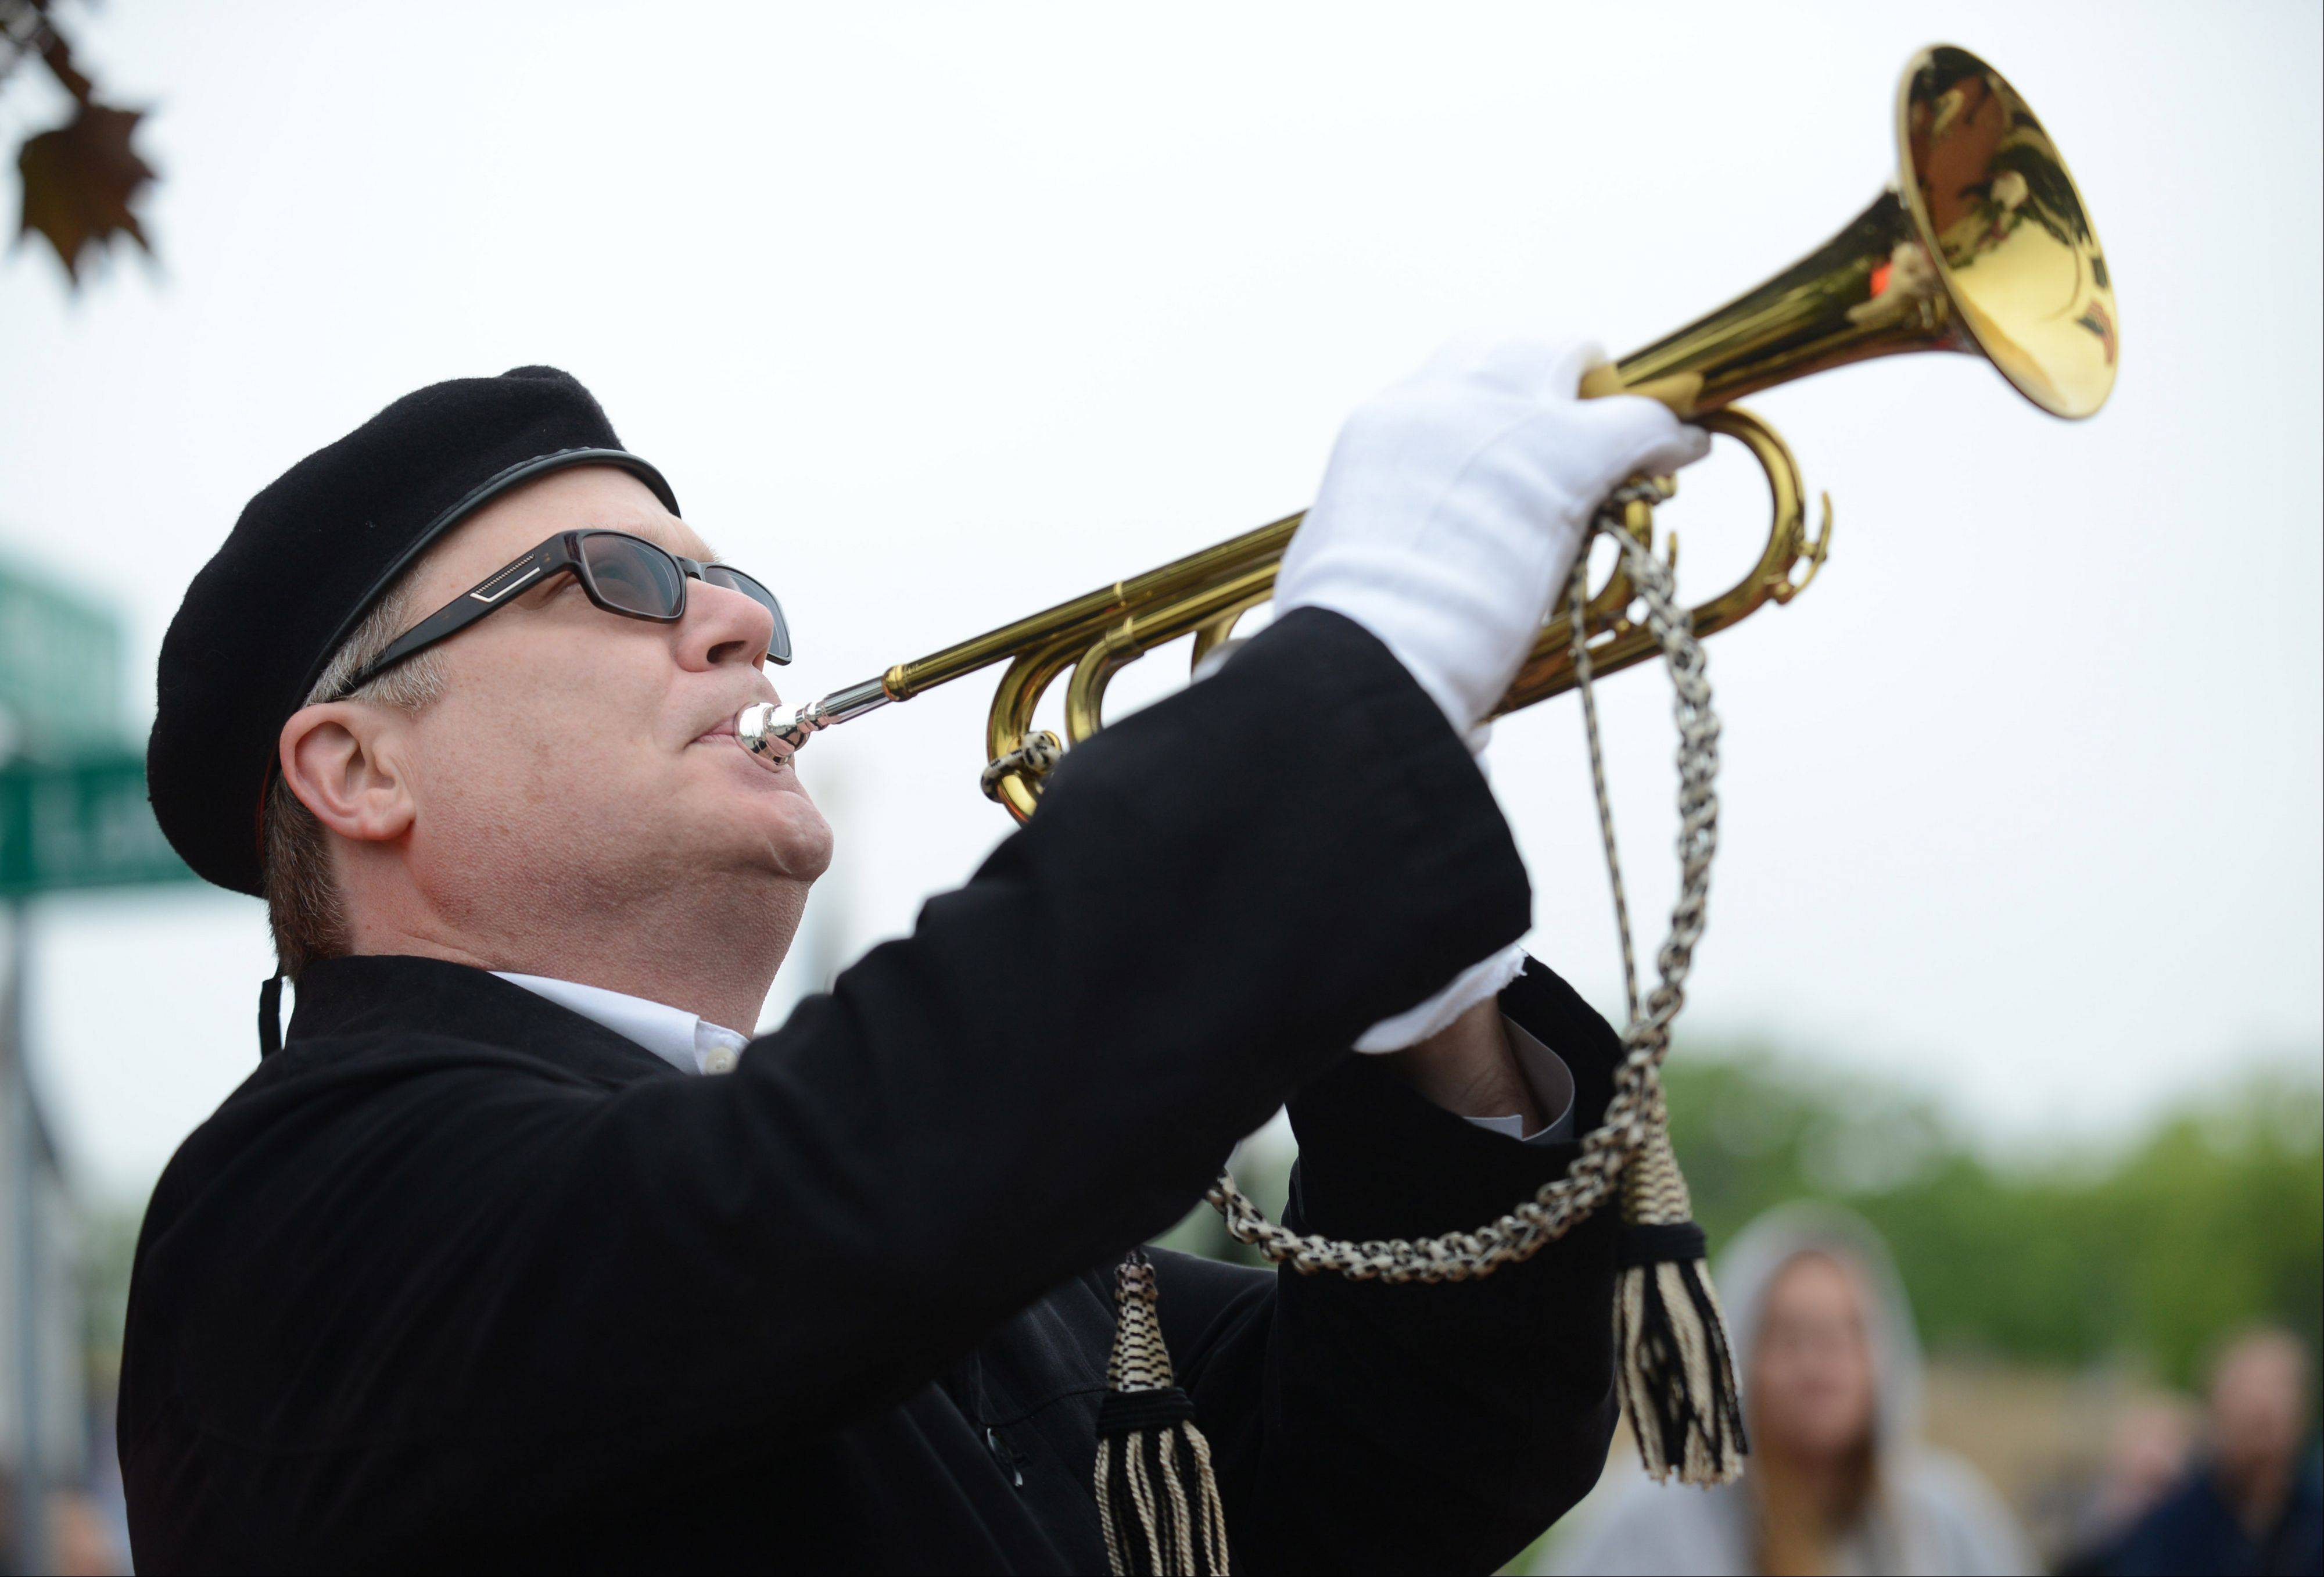 Bugler Gary Stoodley of Grayslake plays during Monday's Memorial Day ceremony in Round Lake.